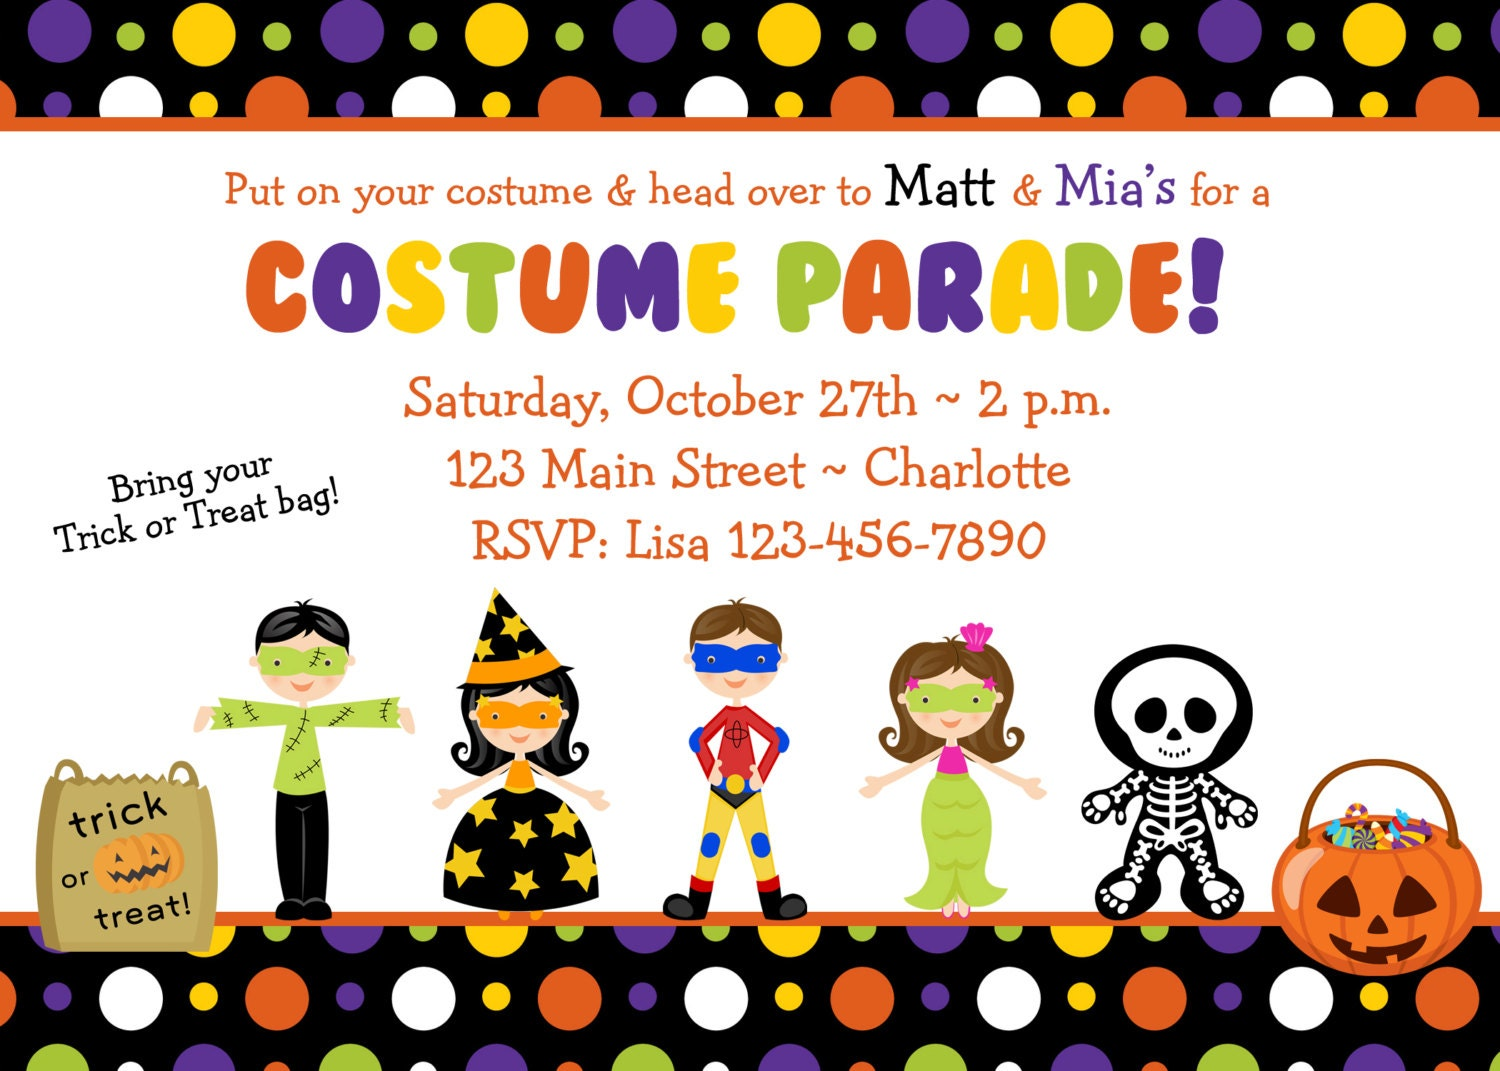 Halloween costume party invitation costume parade party zoom stopboris Choice Image